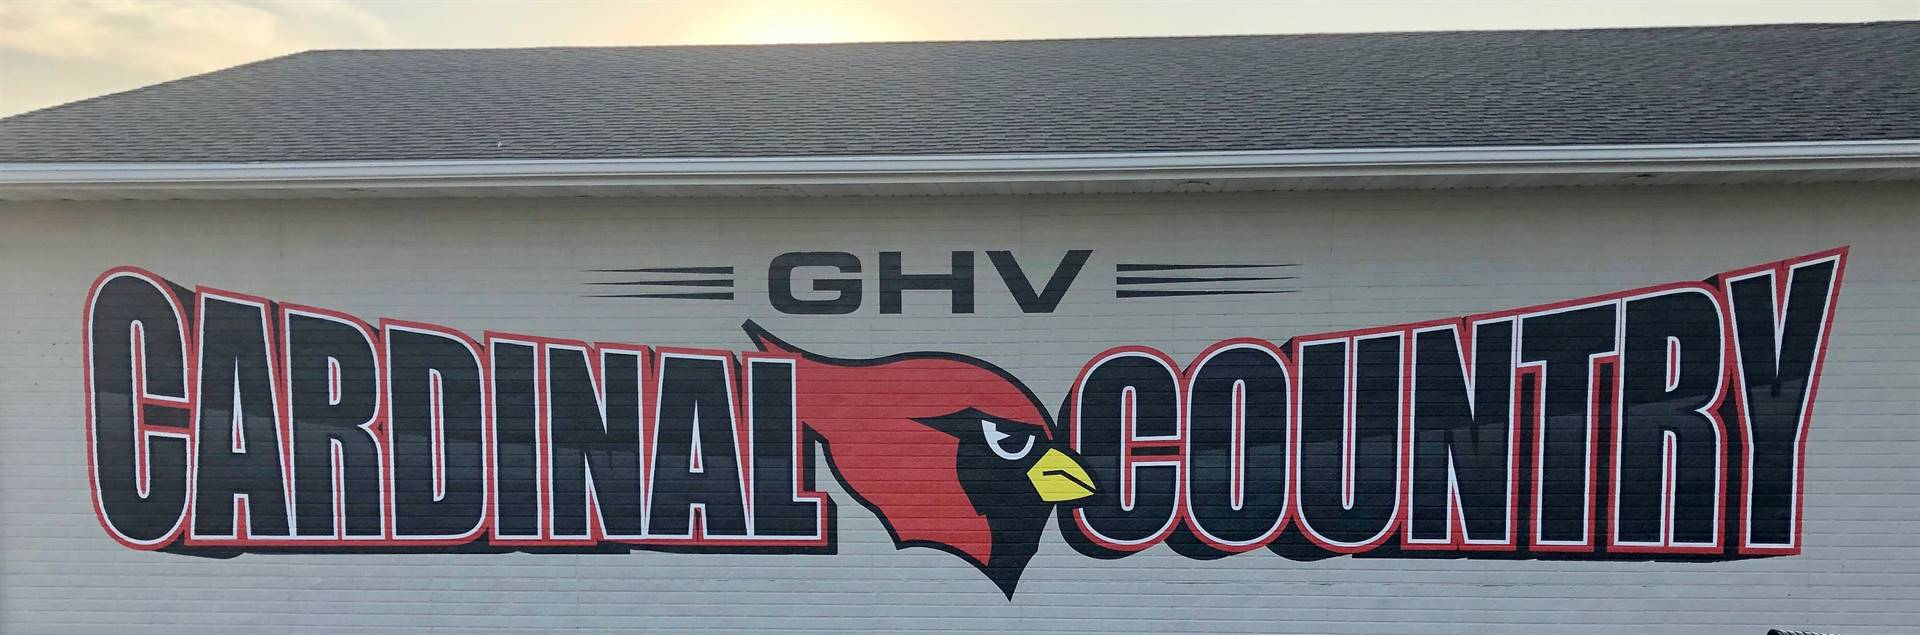 photo of cardinal country logo painted on concession stand building